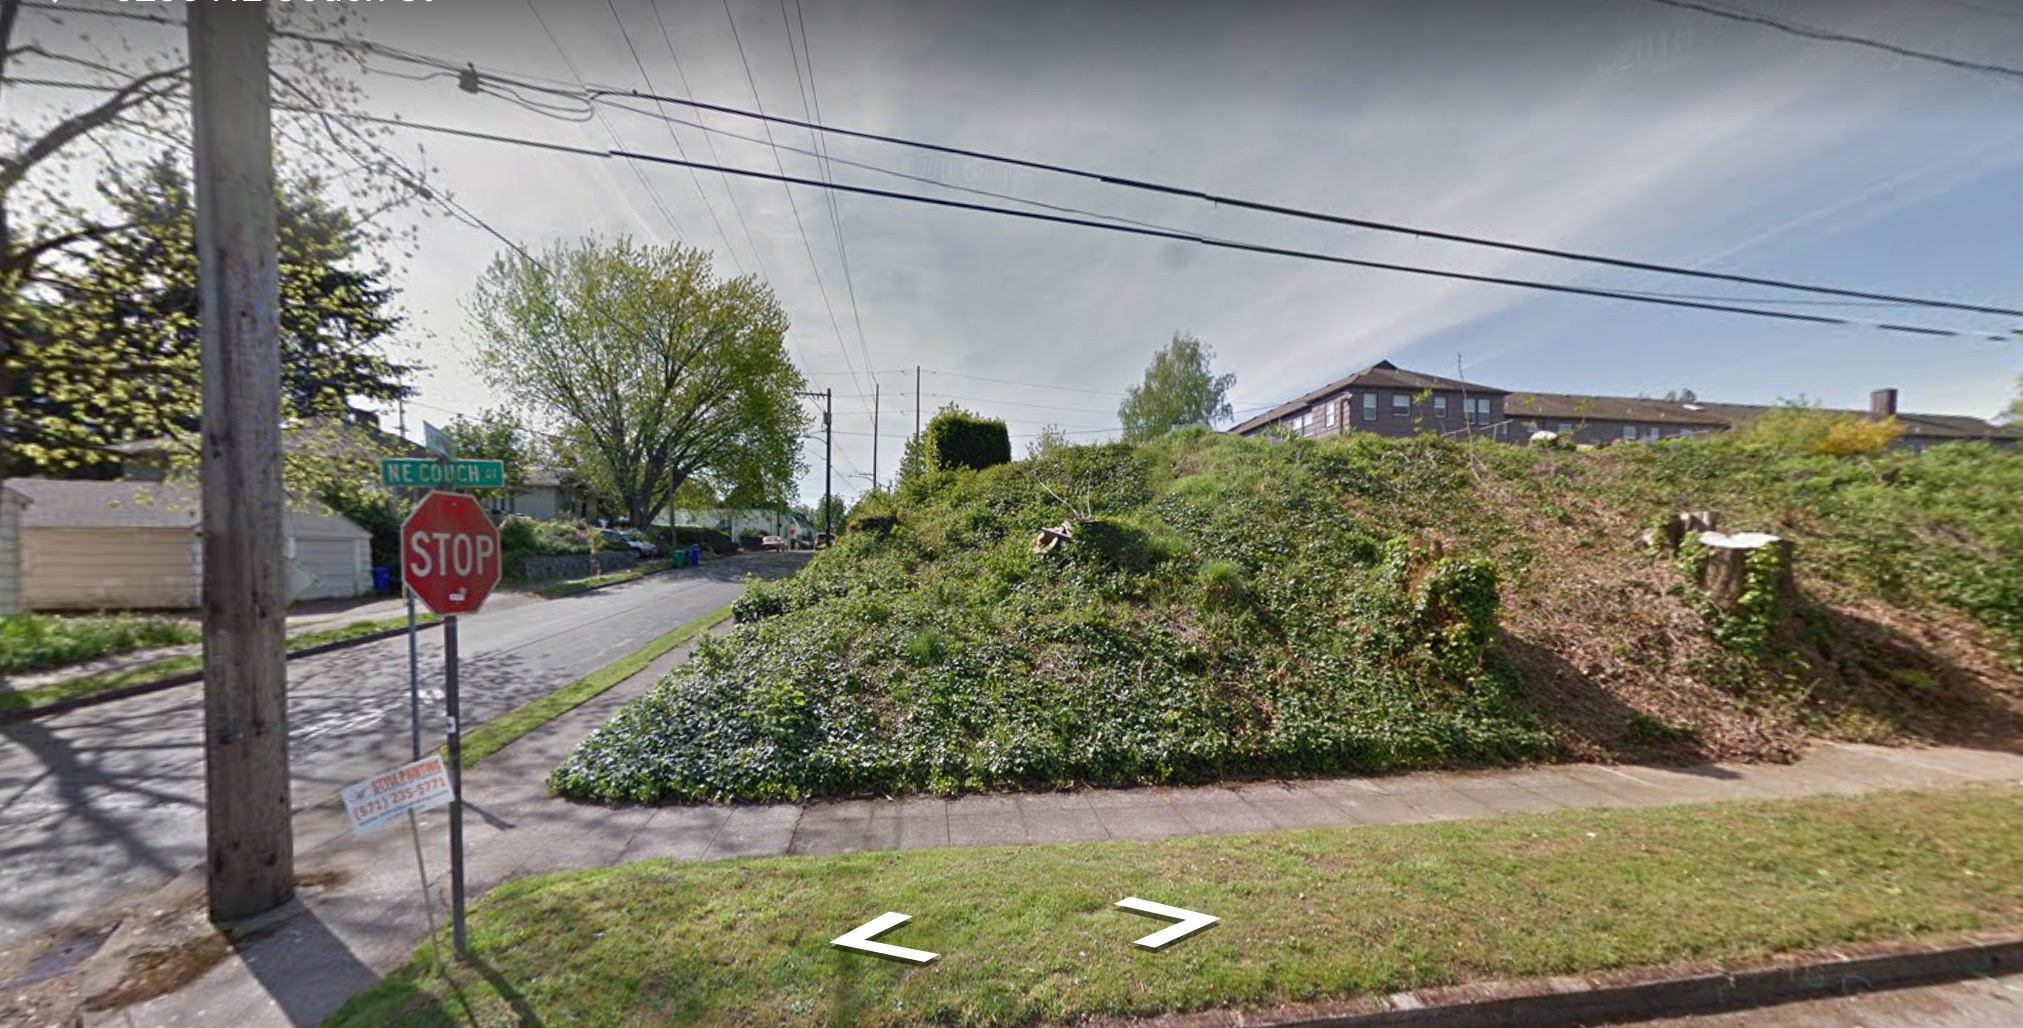 Meeting to plan NE 53rd & Couch appeal: Thursday, Feb. 16